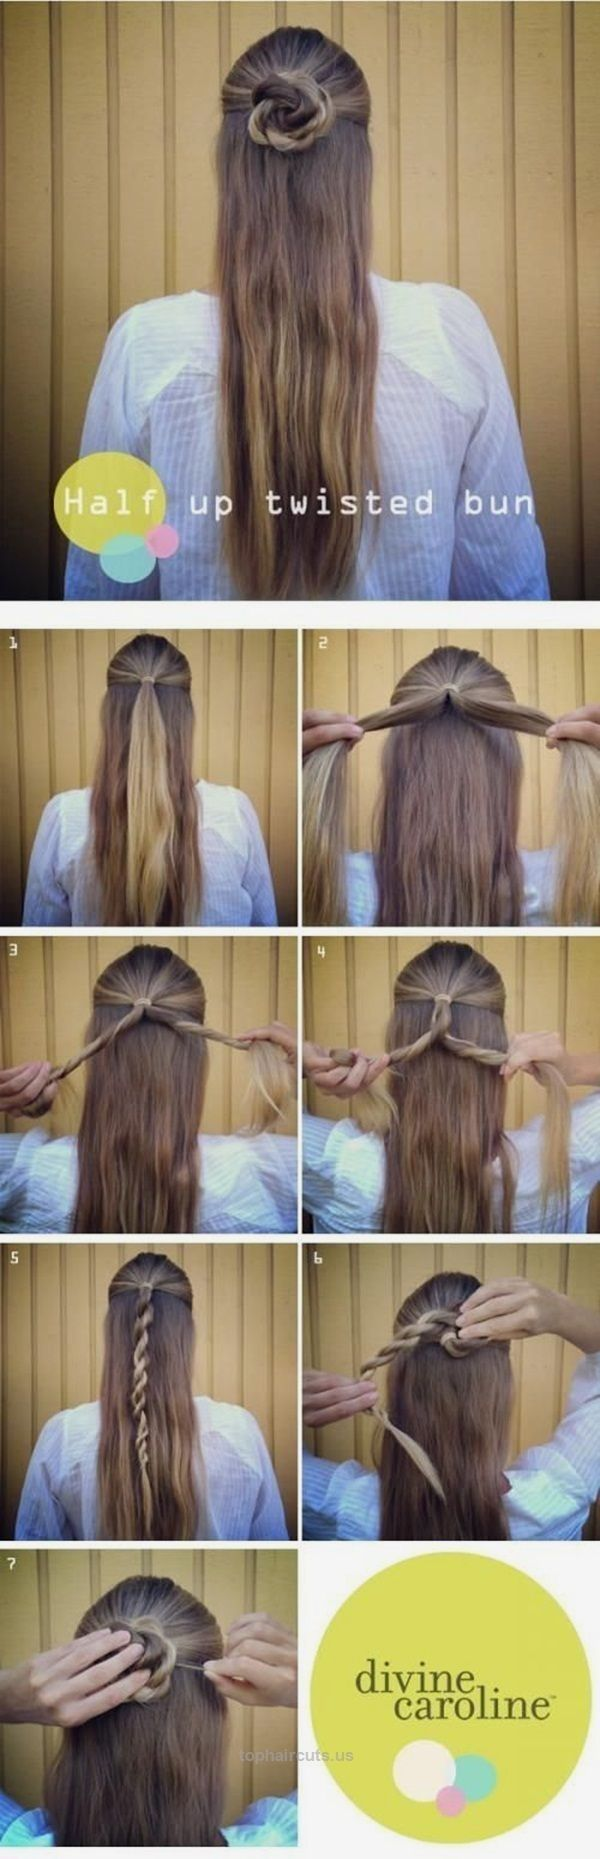 40 Easy Hairstyles for Schools to Try in 2017. Quick, Easy, Cute and Simple Ste… 40 Easy Hairstyles for Schools to Try in 2017. Quick, Easy, Cute and Simple Step By Step Girls and Teens Hairstyles for Back to School. Great Fo ..